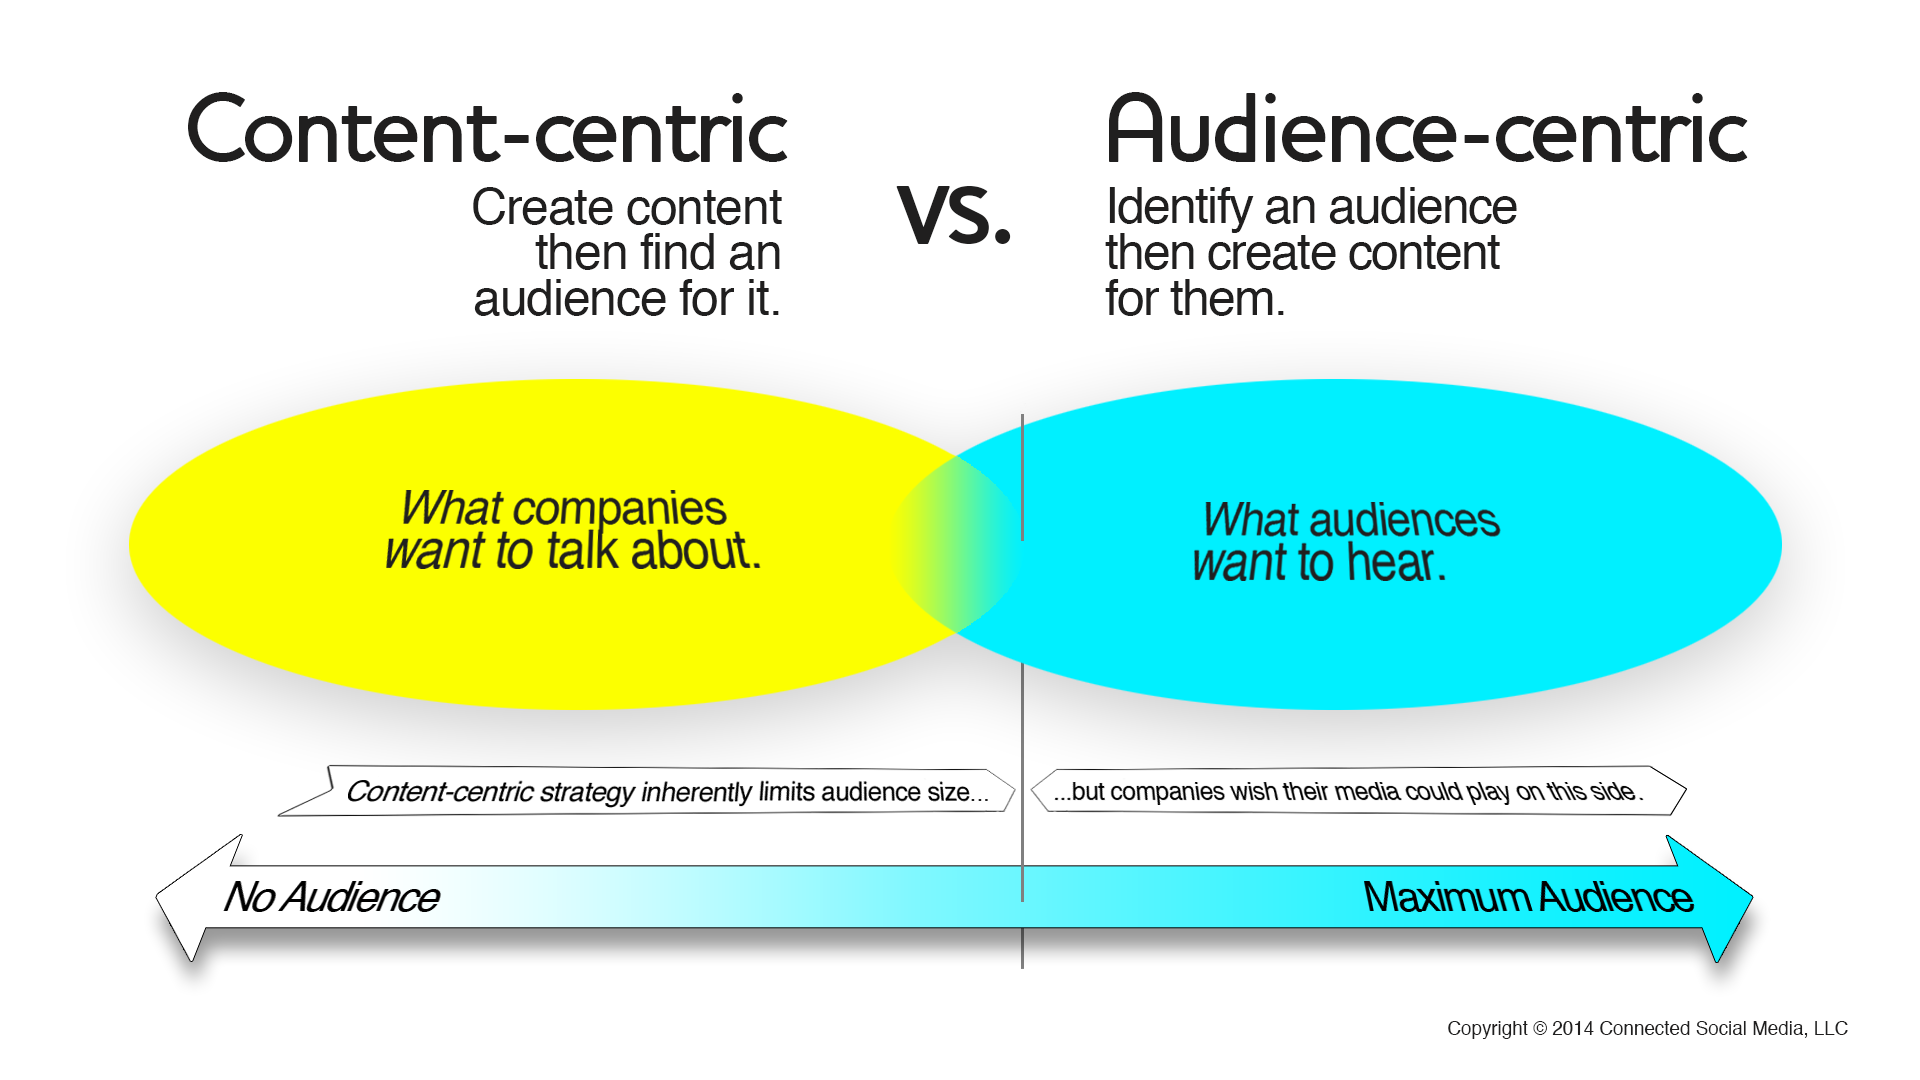 Choices - content vs audience centric